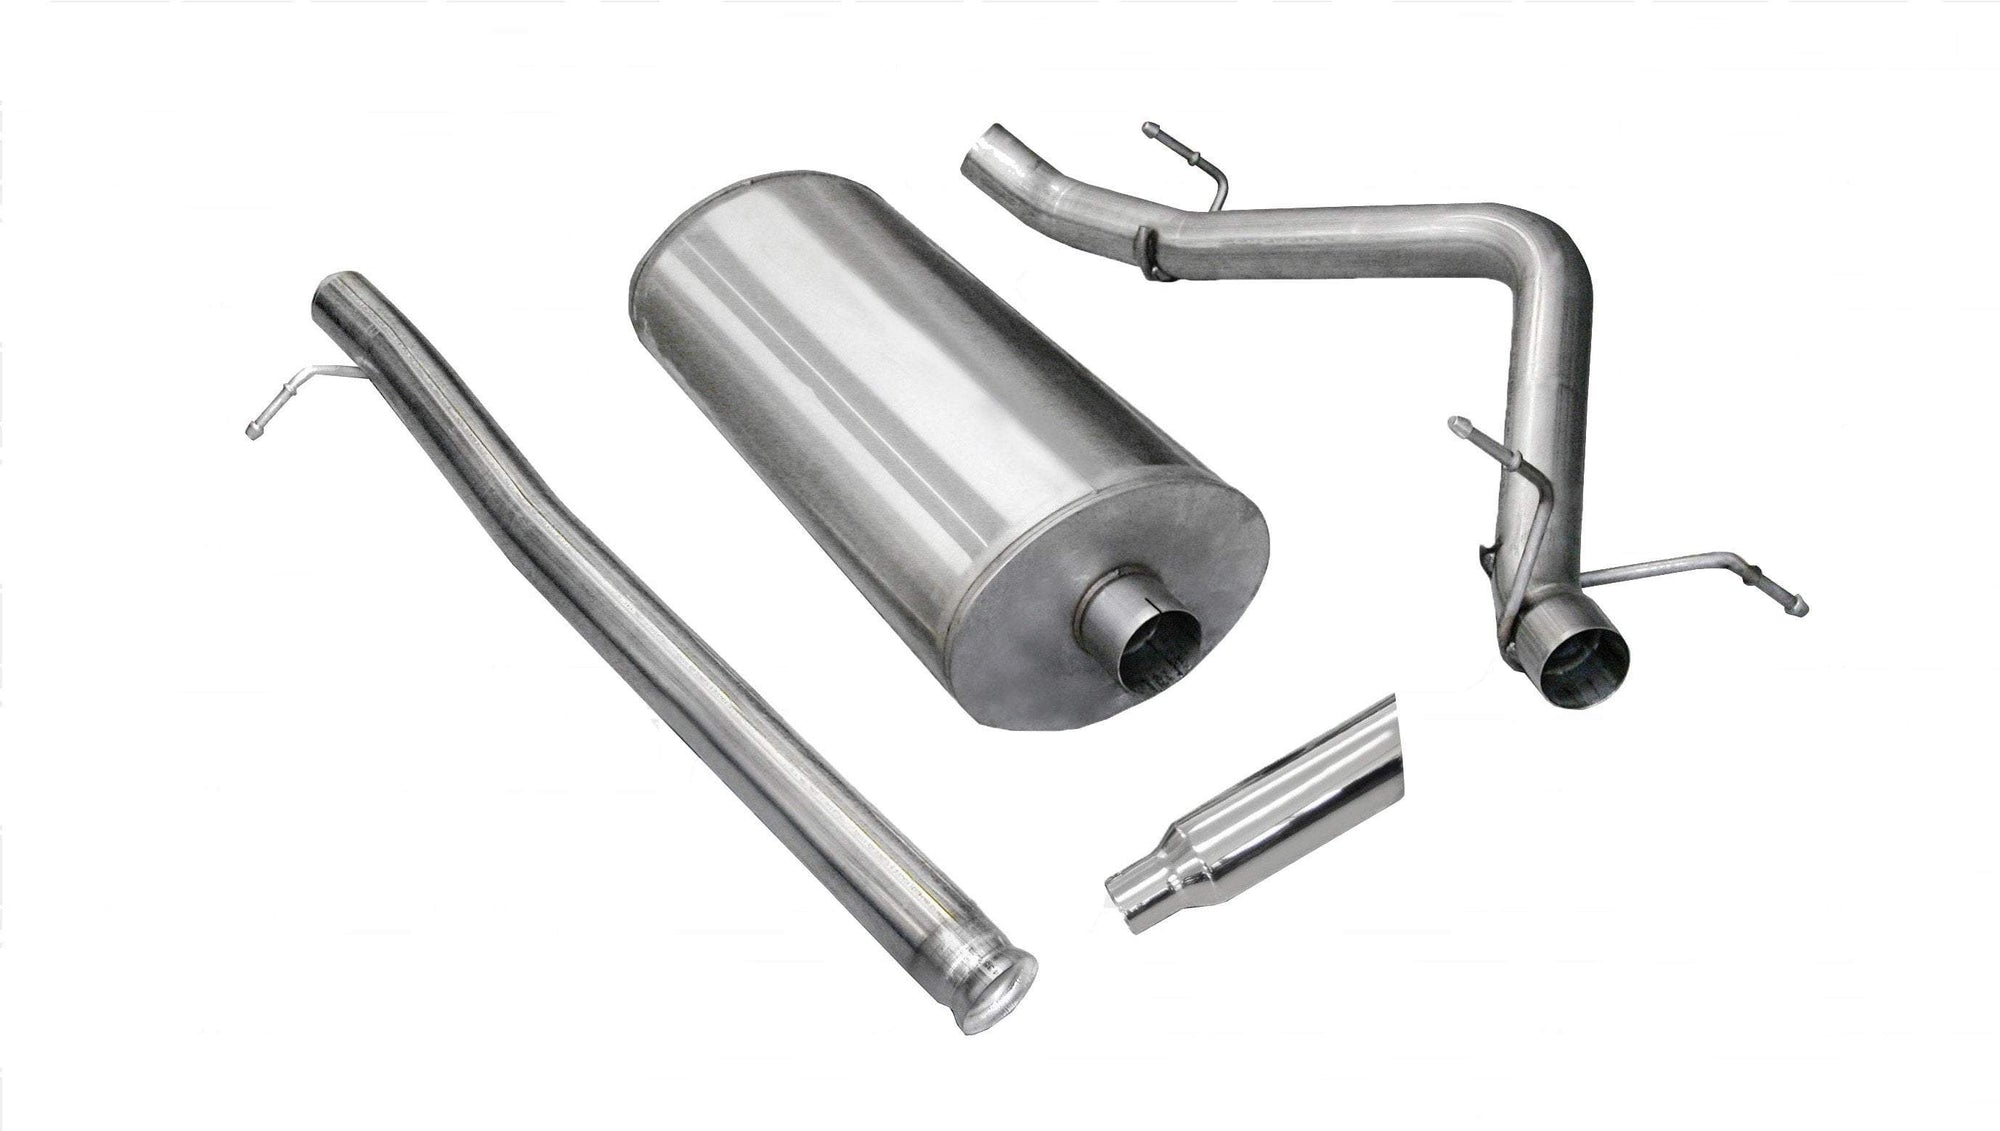 "dB Cat-Back Exhaust Polished / Sport / Single Side - Single 4in 2009 Chevrolet Silverado, GMC Sierra, 4.8L, 5.3L, 6.0L V8, 3.0"" Single Side Exit Catback Exhaust System With 4.0"" Tip (24904) Sport Sound Level"